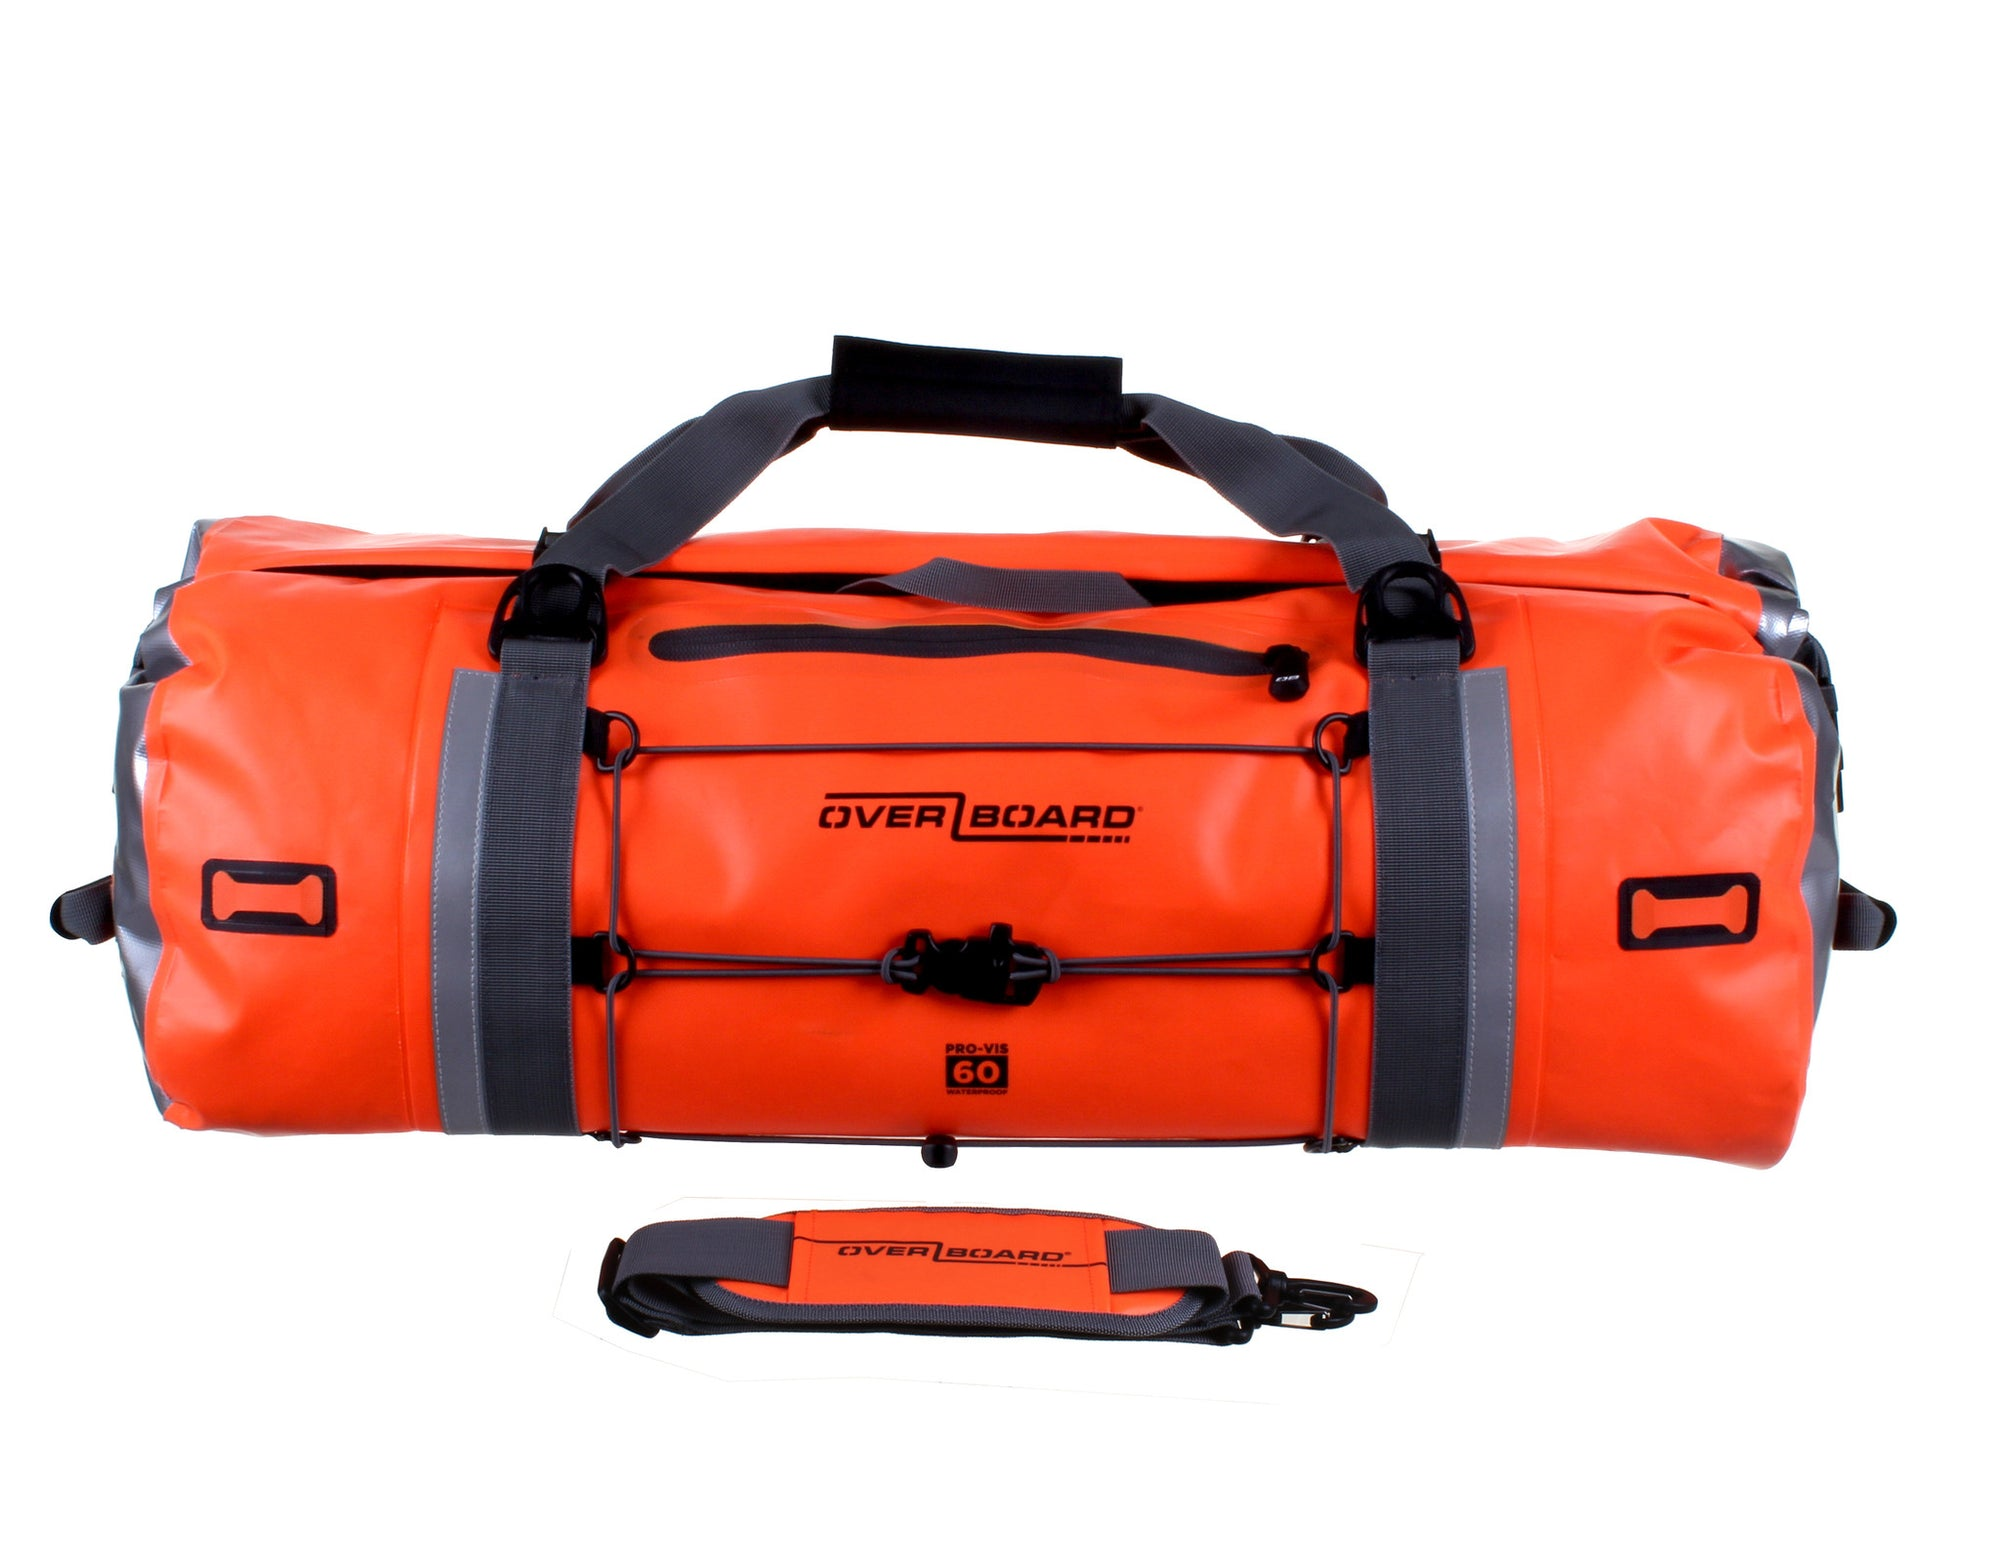 OverBoard-Pro-Vis Waterproof Duffel Bag - 60 Litre-Waterproof Duffel-High-Vis Orange-Gearaholic.com.sg